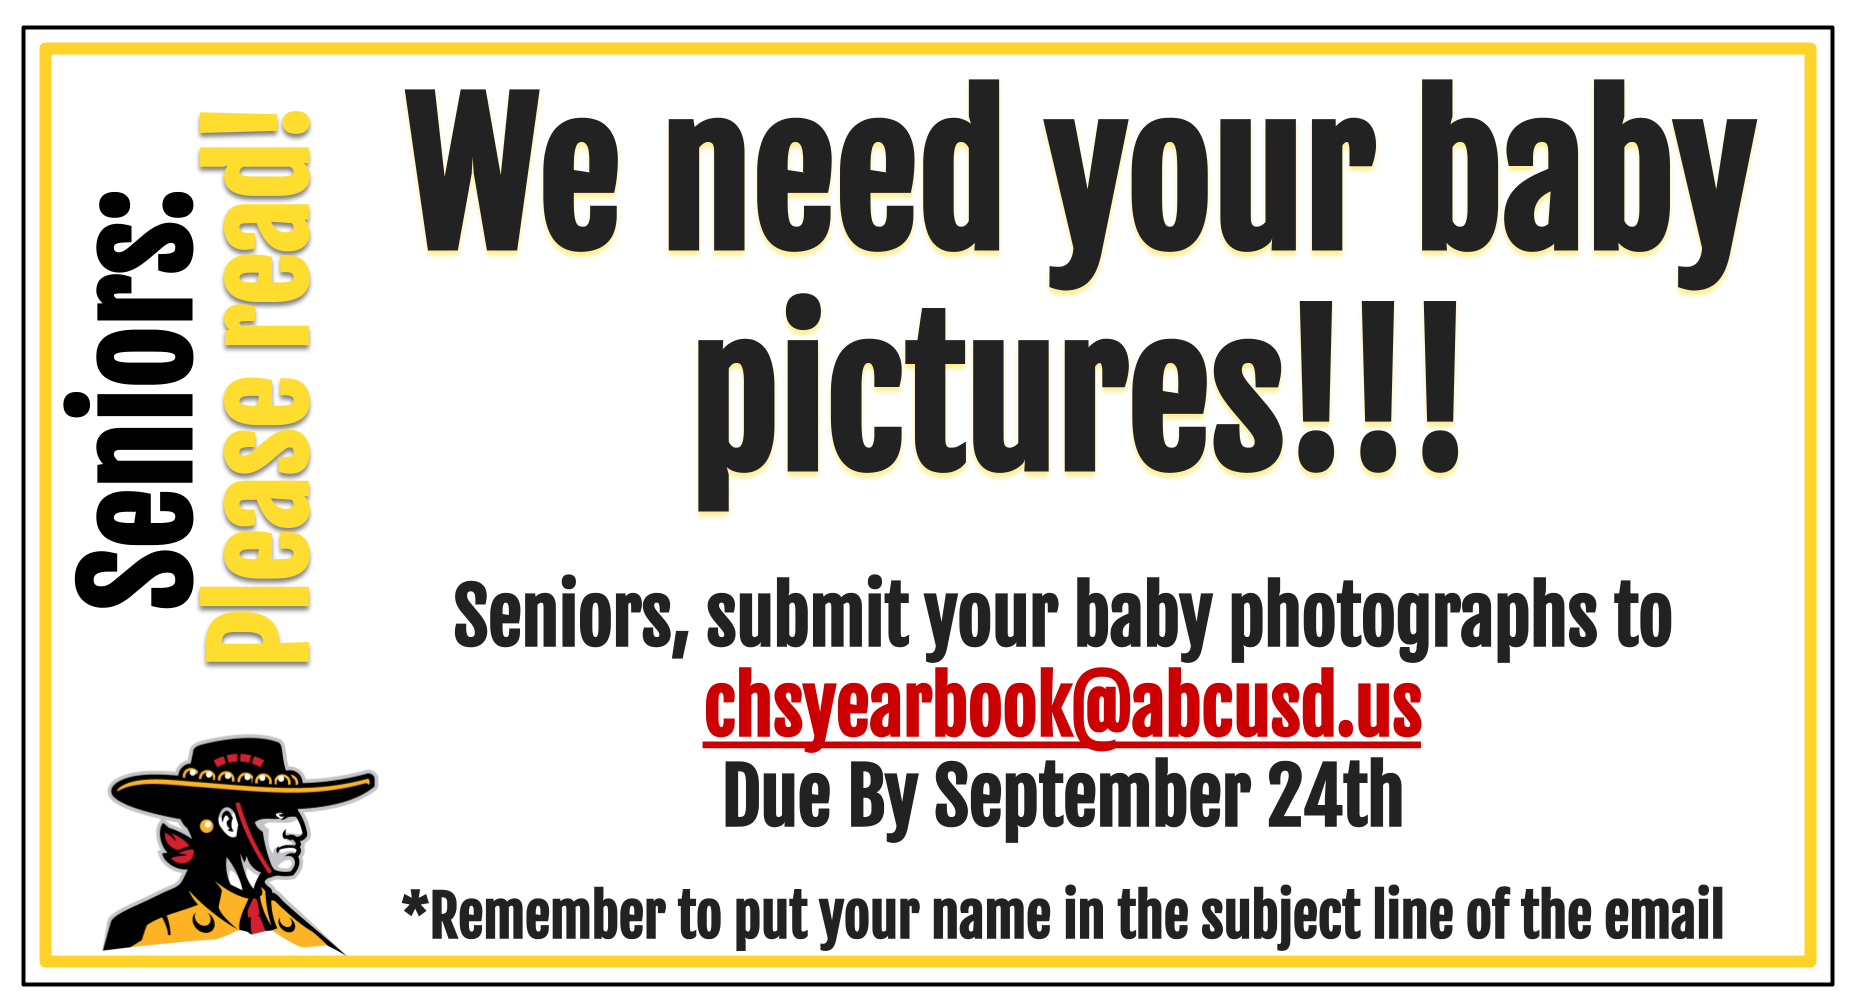 We need your baby pictures seniors!